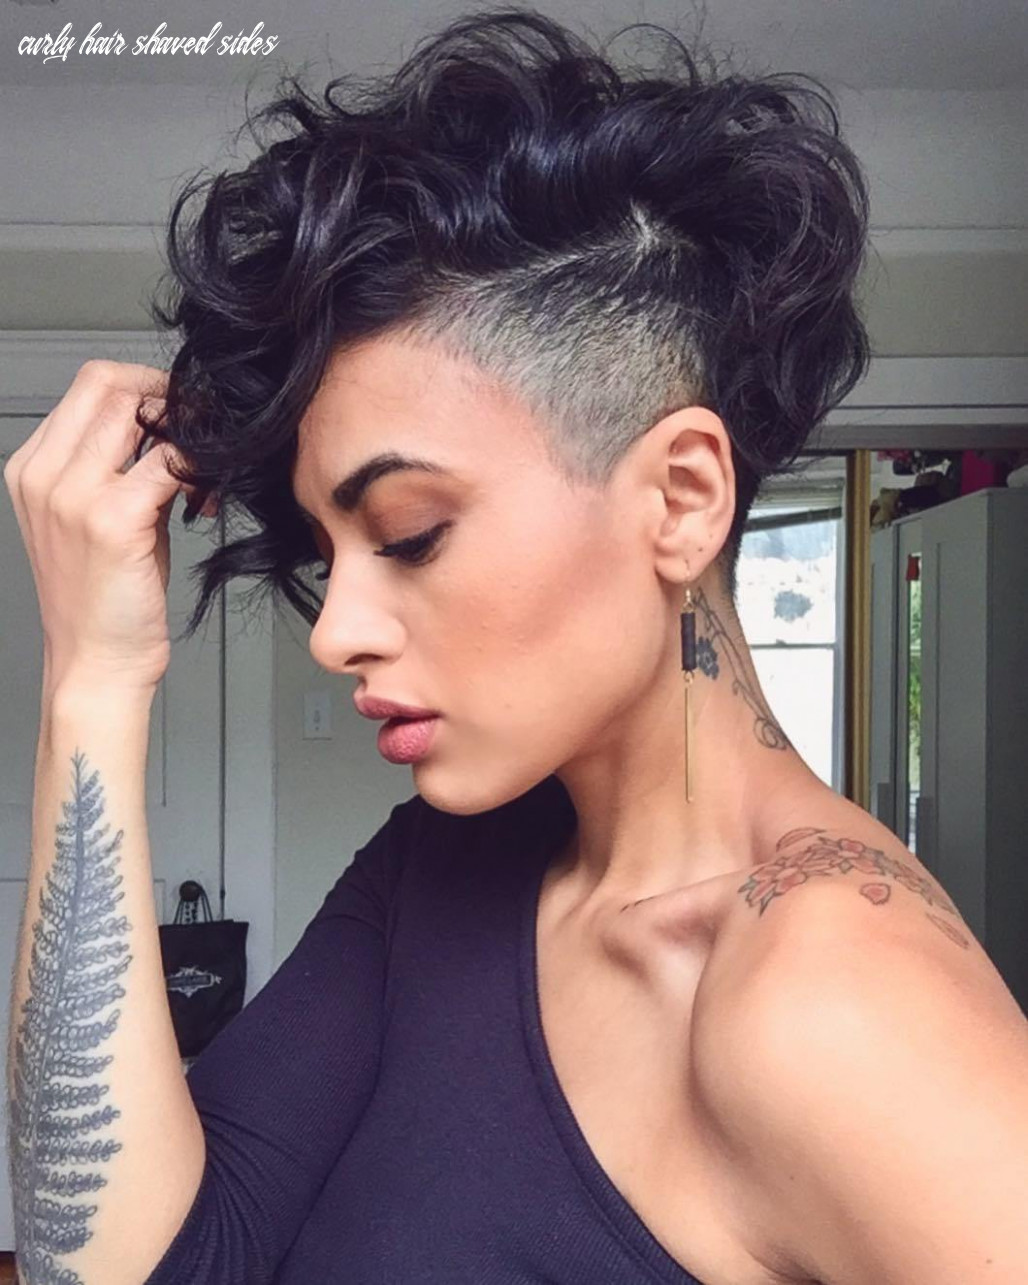 8 bold shaved hairstyles for women | shaved hair designs curly hair shaved sides